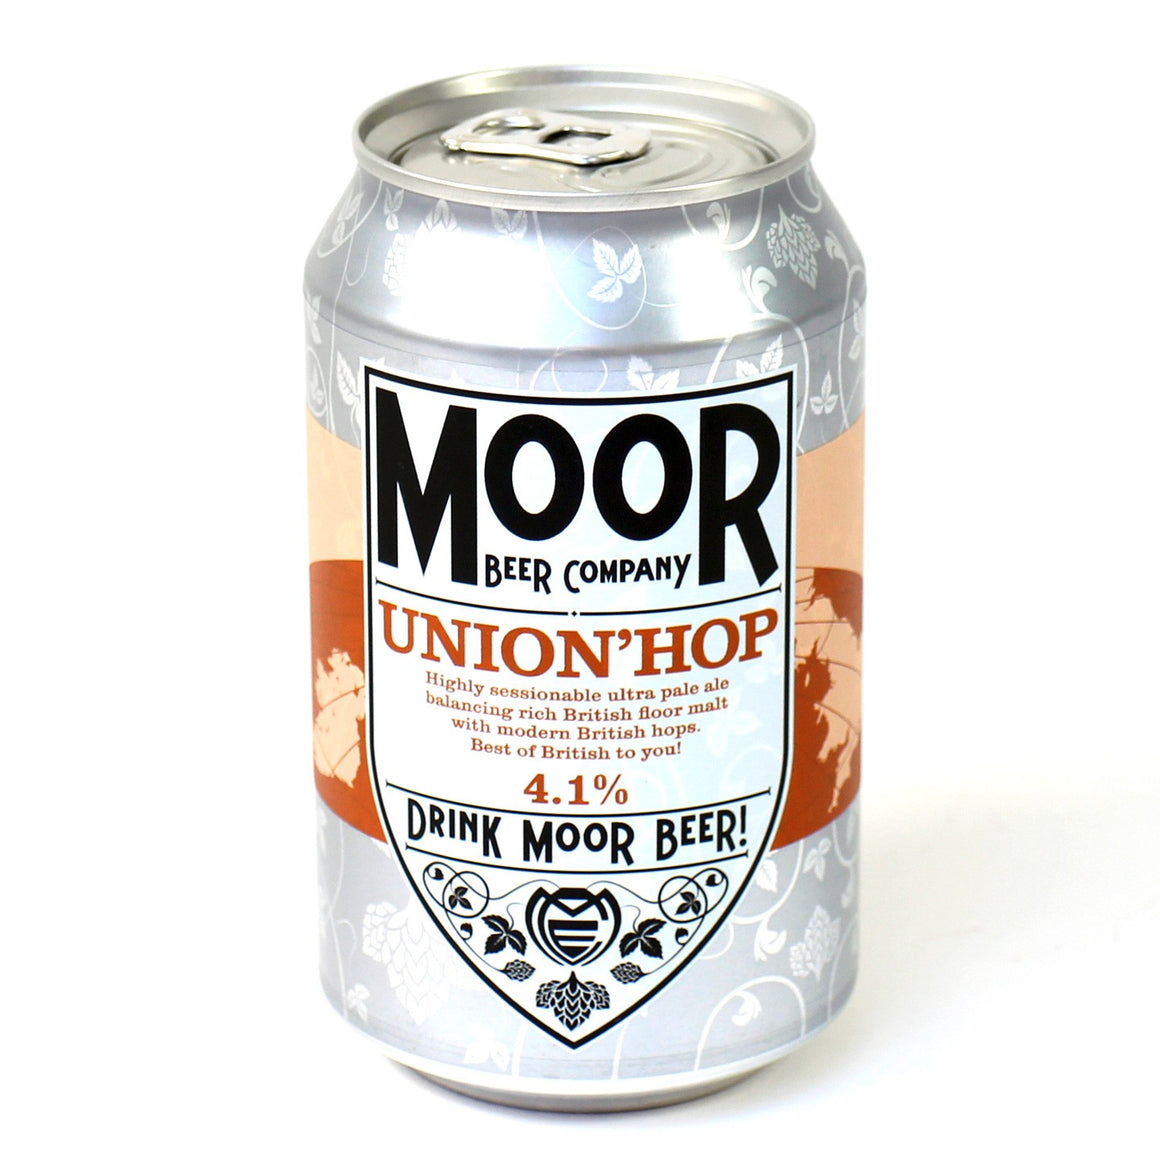 Moor Beer Company - Union'Hop - Pale Ale - 330ml Can